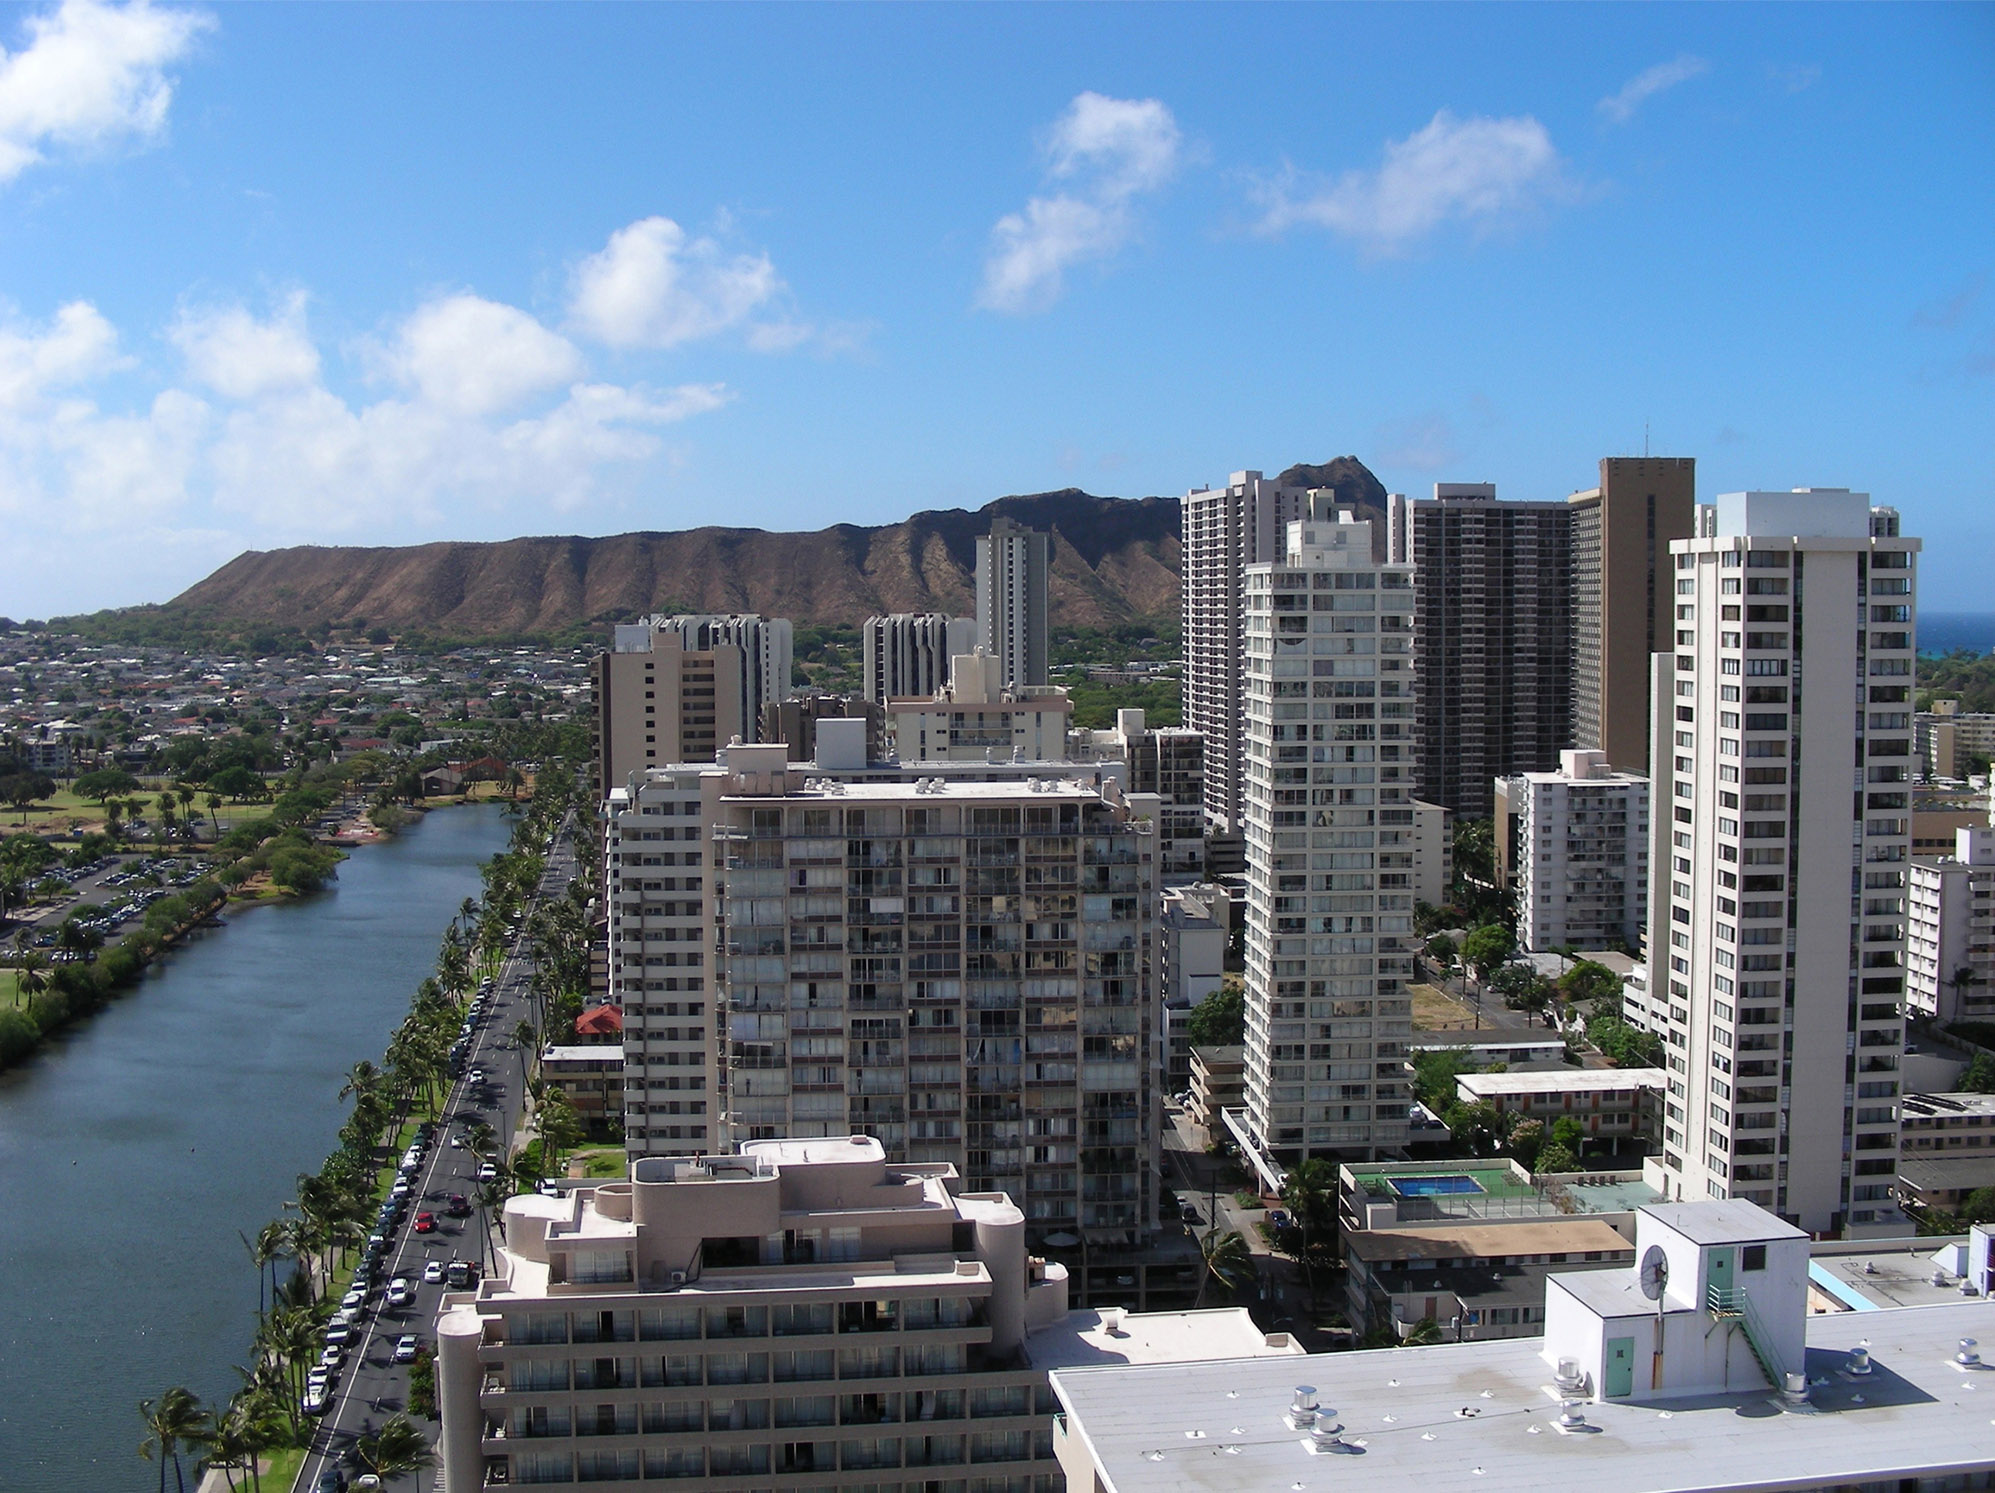 [Waikīkī and Diamond Head] Photo by Kristina D. C. Hoeppner, available under a Creative Commons Attribution–ShareAlike 2.0 Generic License.